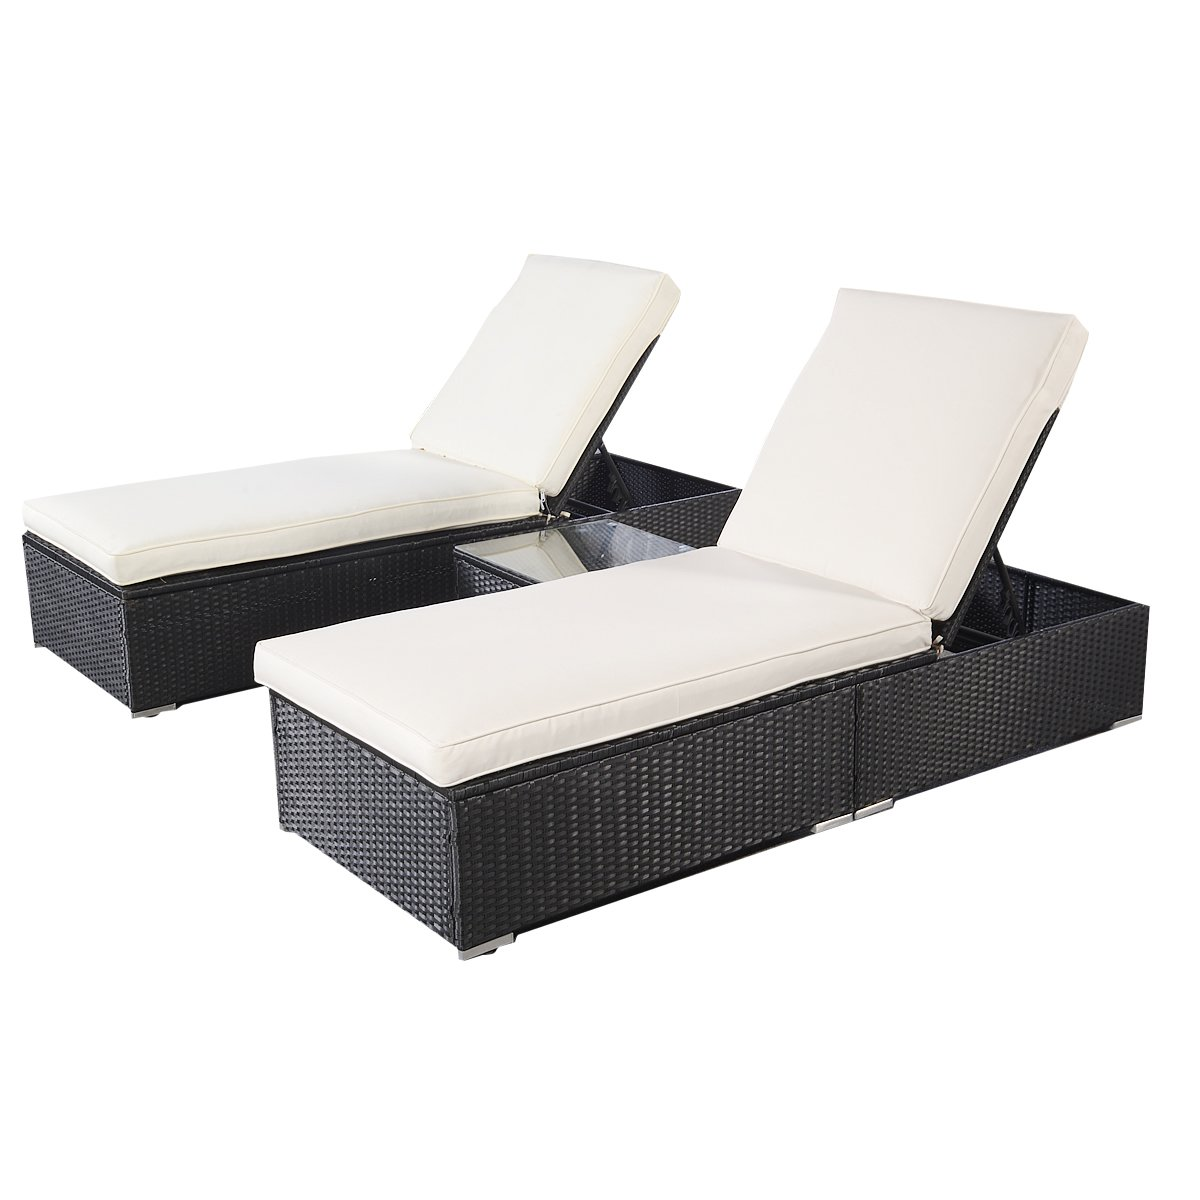 White resin wicker chaise lounge interesting strathmere for Adams mfg corp white reclining chaise lounge